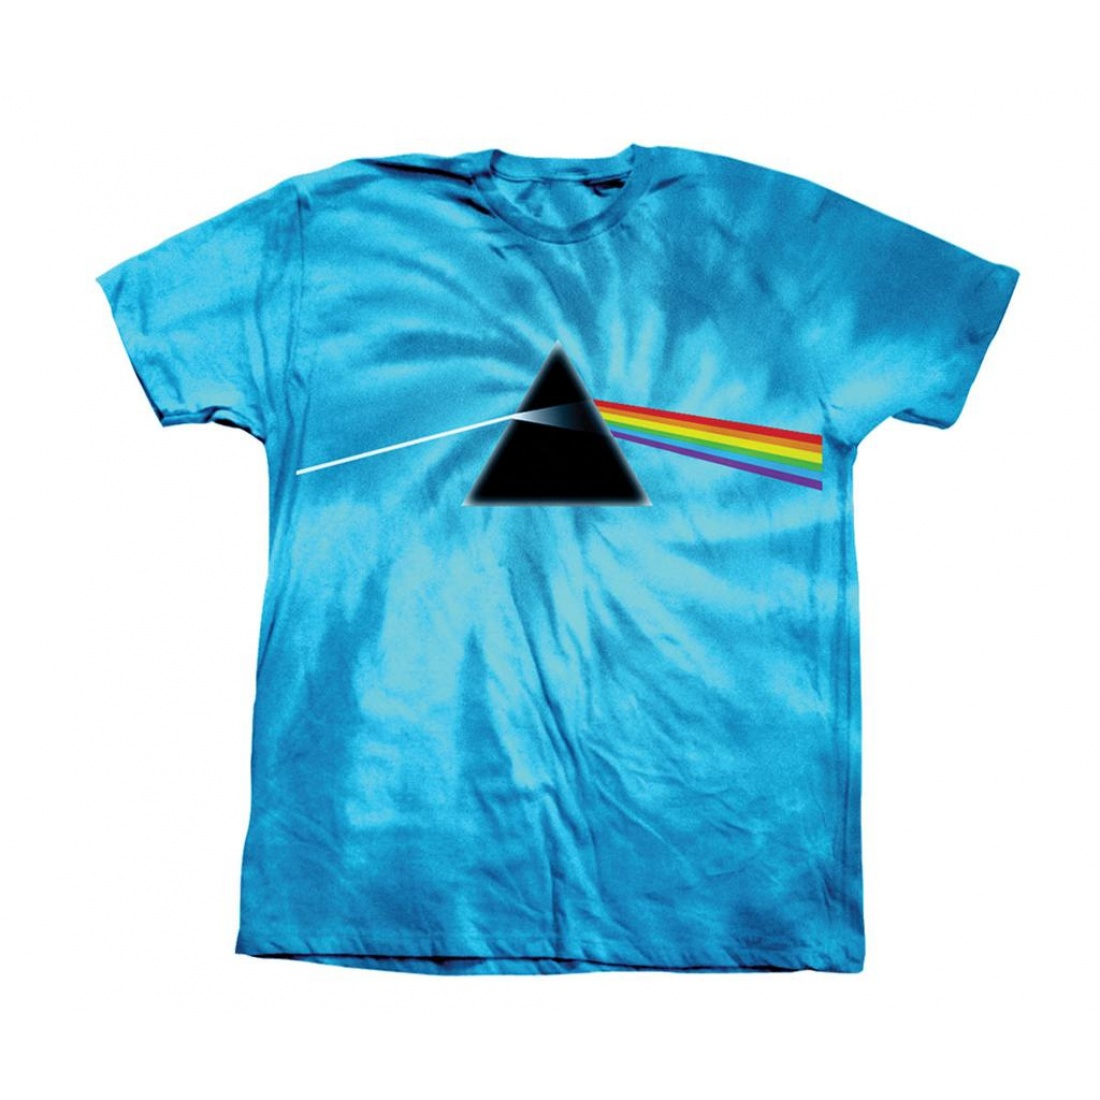 HB-DARKSIDE OF THE MOON TURQUOISE TIE-DYE TEE